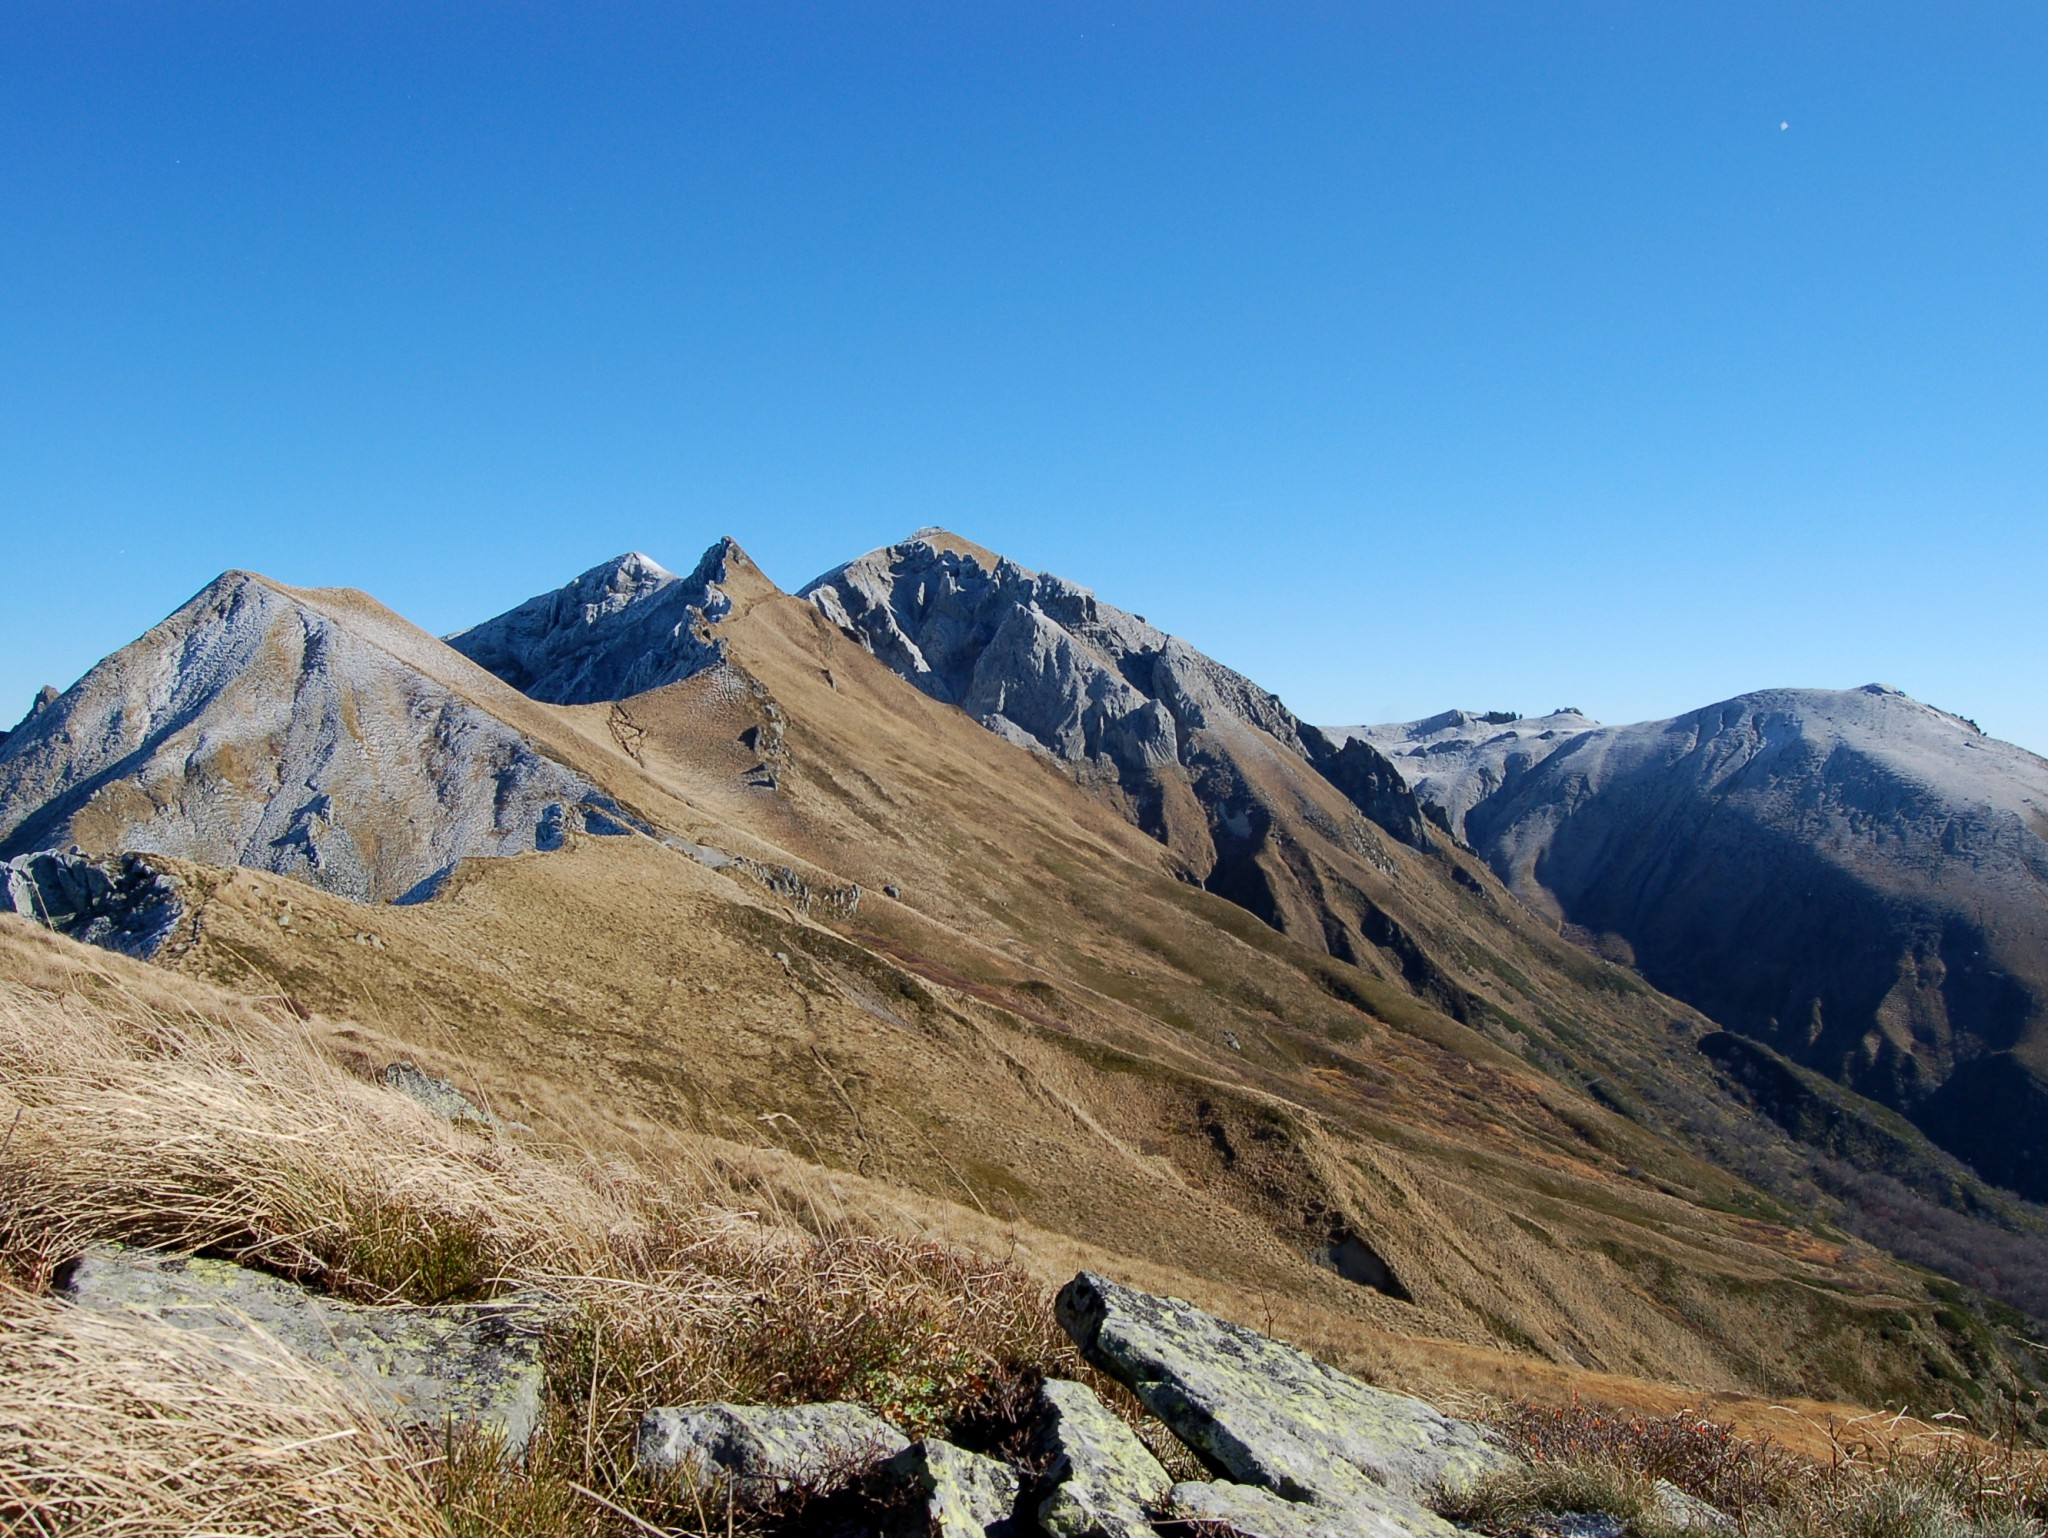 Puy de Sancy © Clément Beckert - licence [CC BY-SA 3